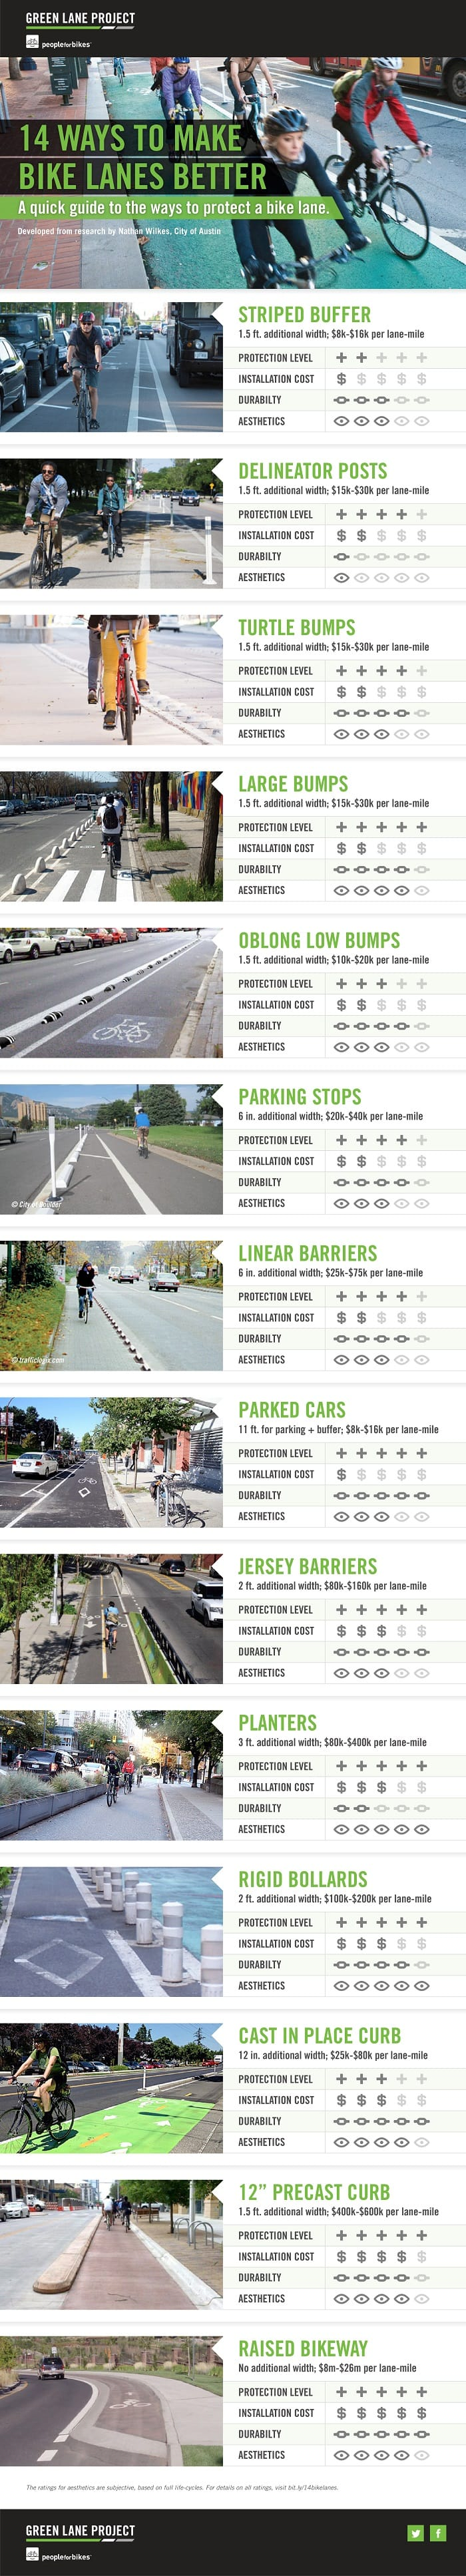 14 ways to protect bike lanes (PeopleForBikes)